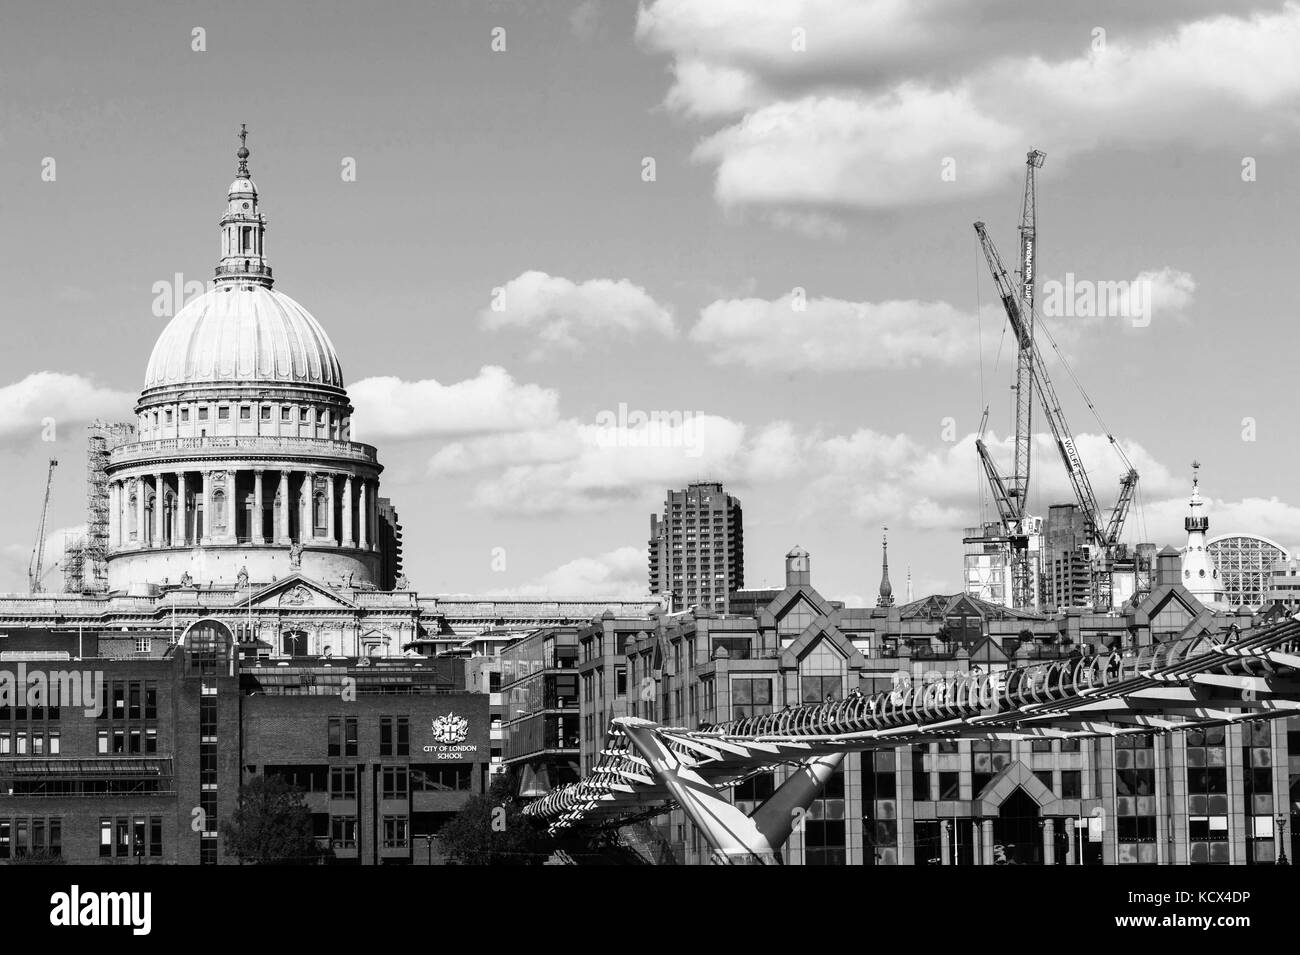 Black and White Monochrome Image of St Pauls Cathedral and the Millennium Footbridge Crossing the River Thames With - Stock Image